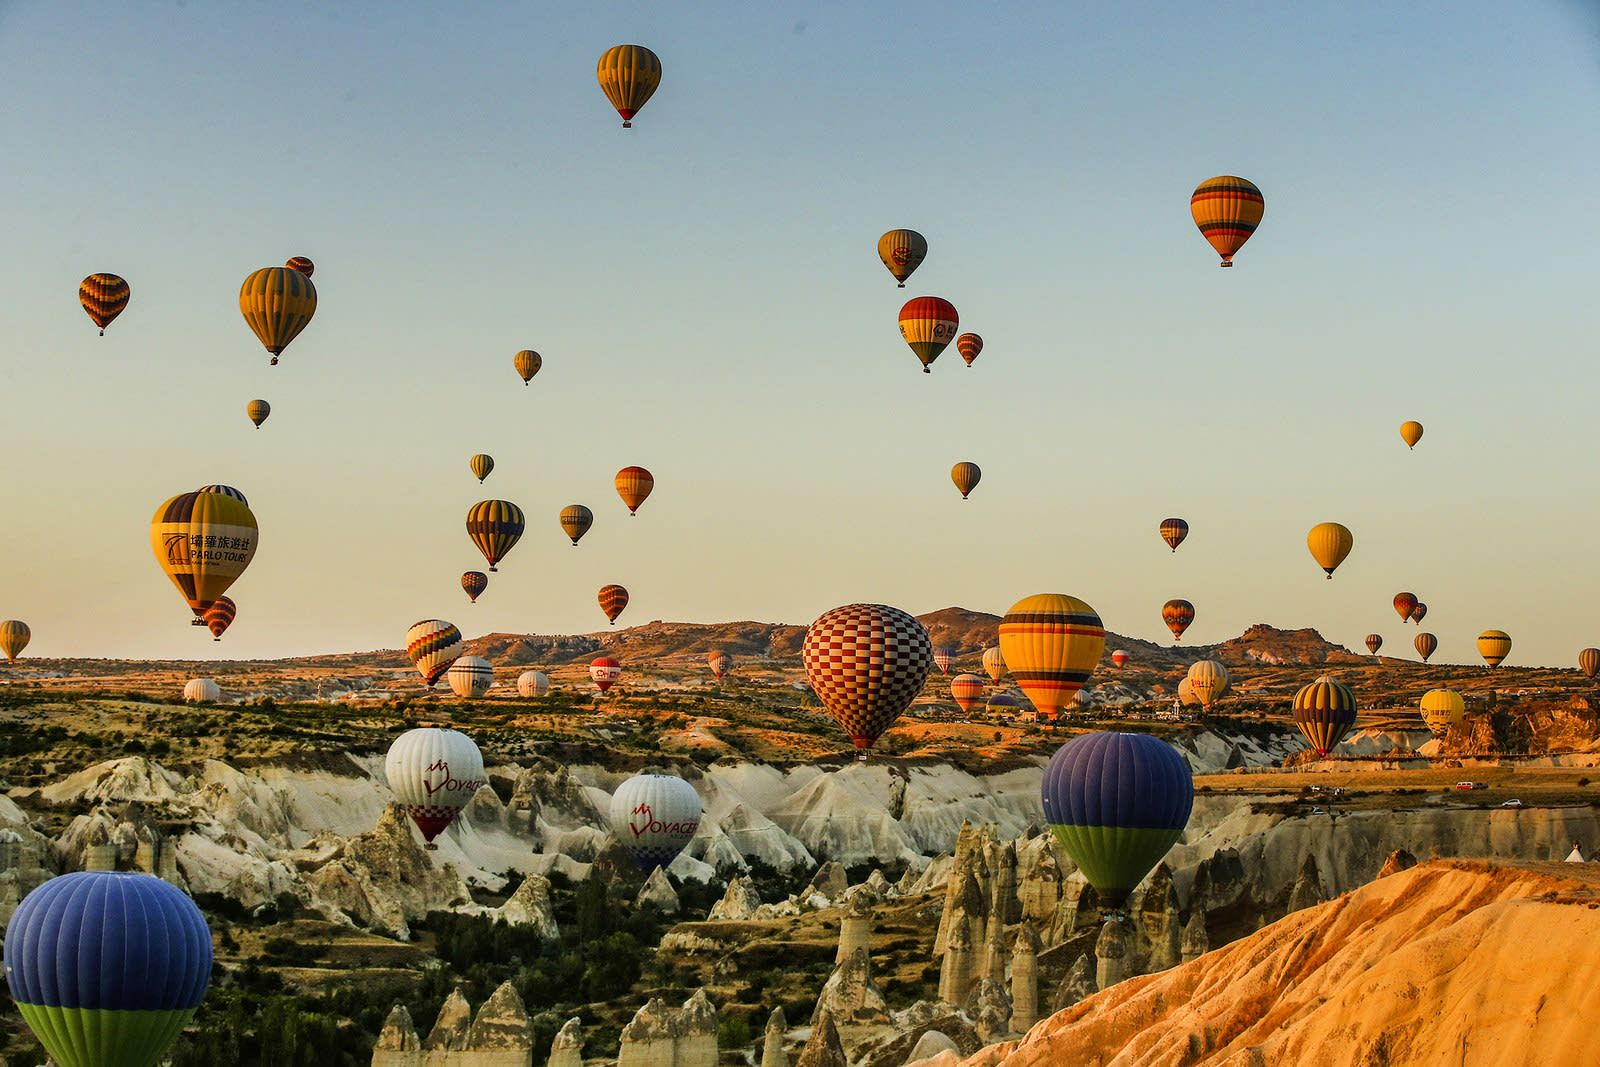 Hot air balloons carrying tourists in the sky at sunrise